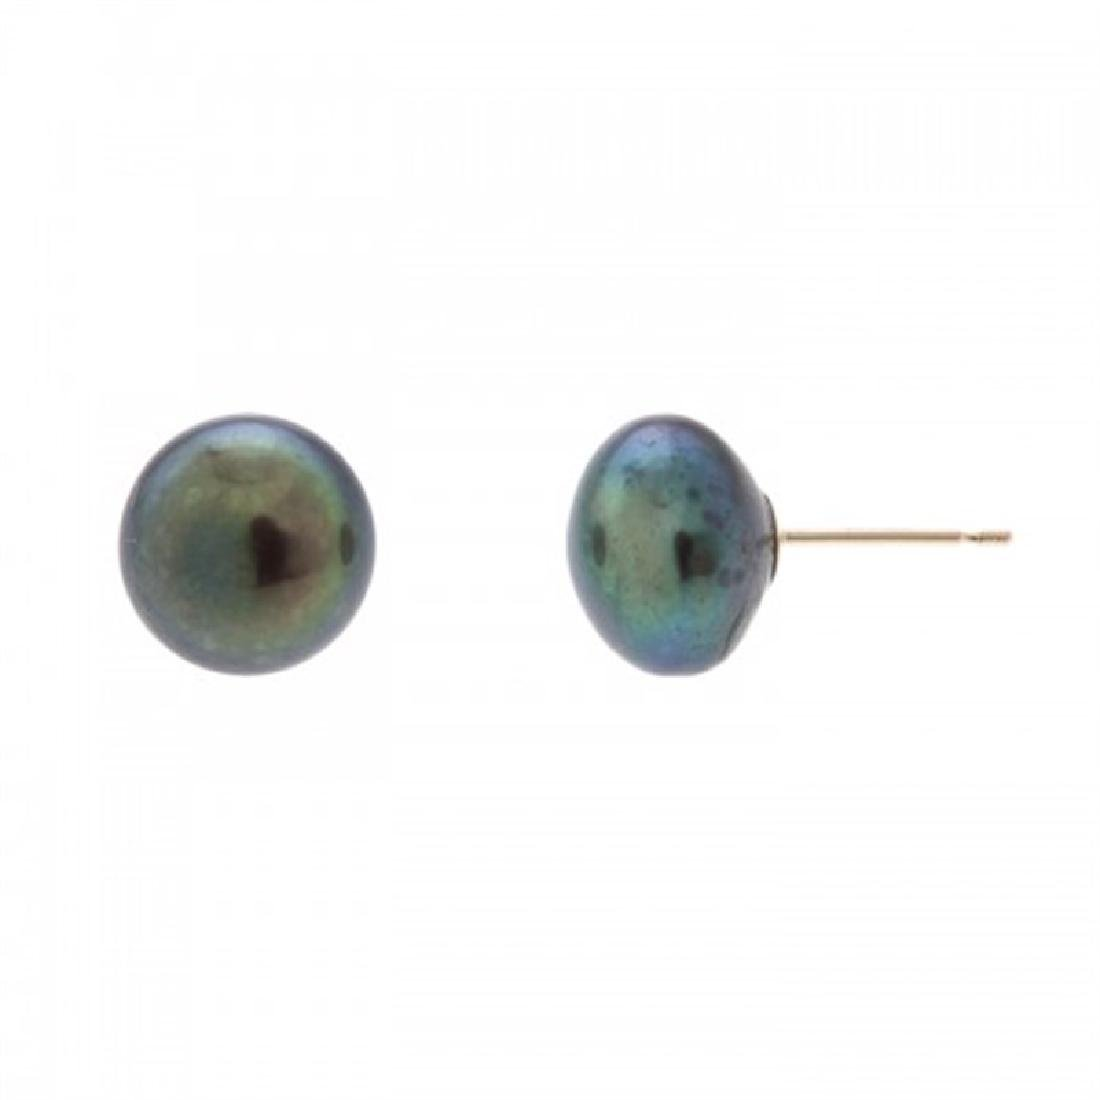 9.0-9.5mm Freshwater Black Pearl Stud Earrings